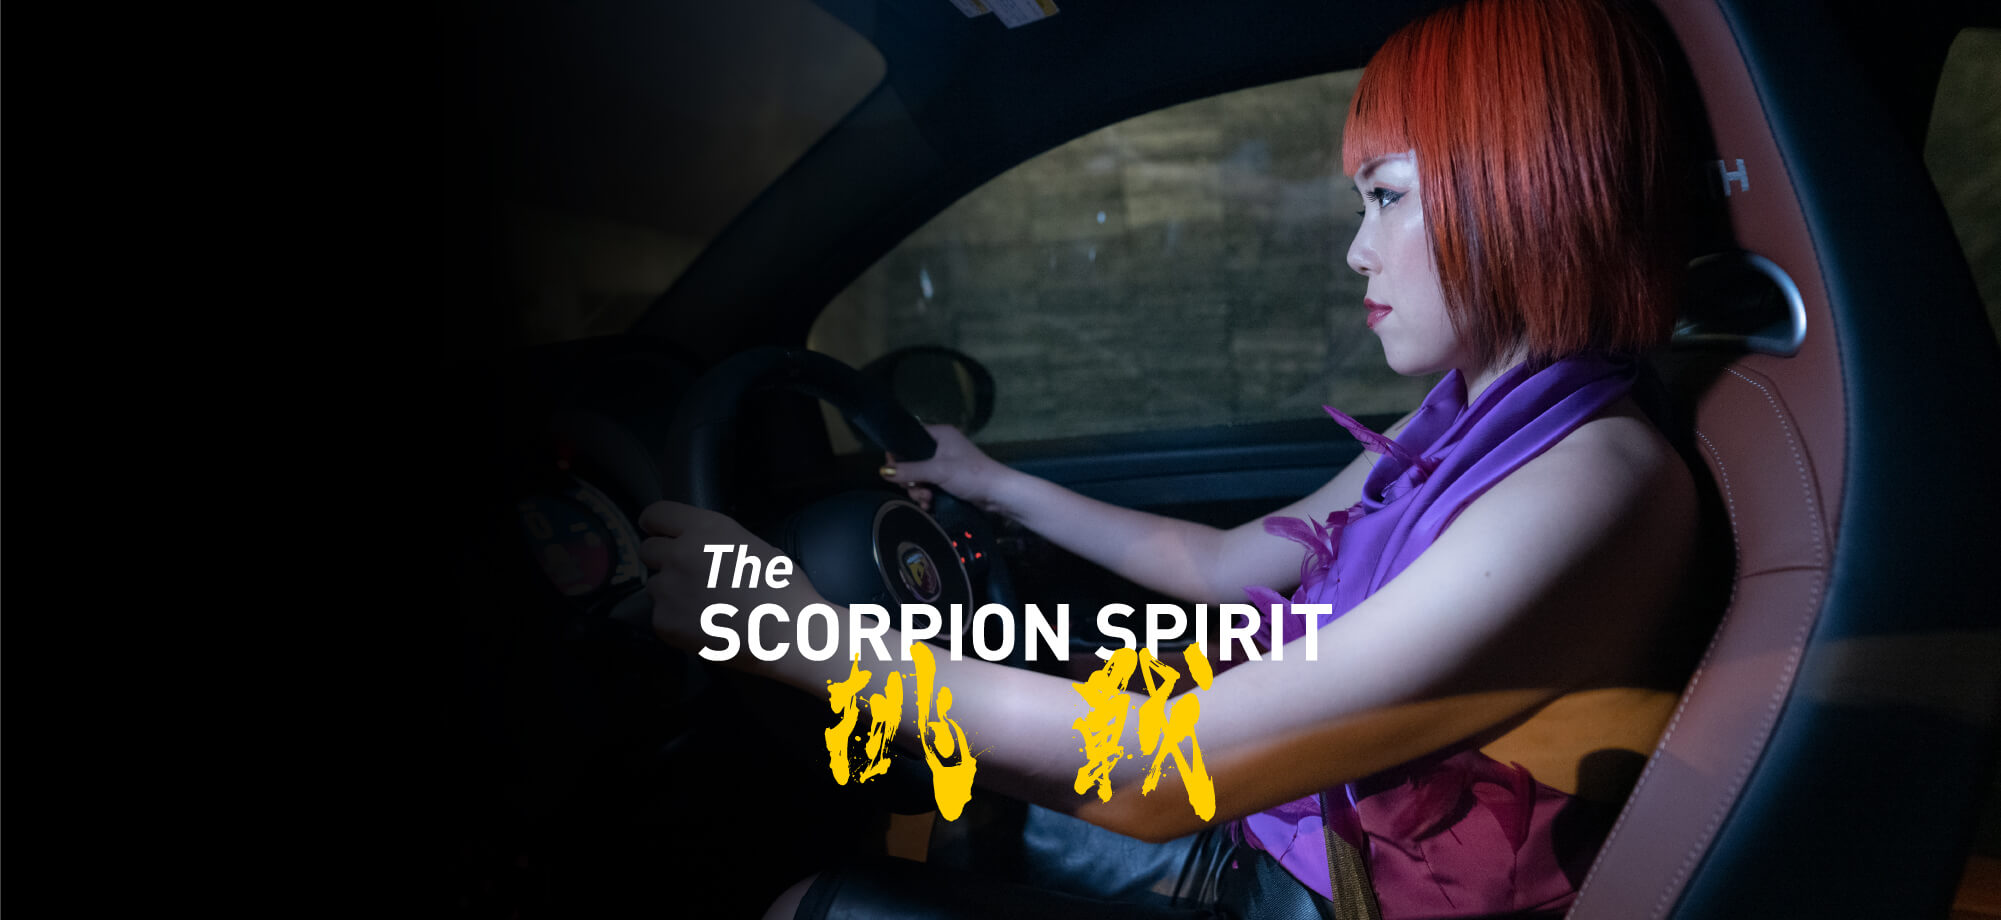 The SCORPION SPIRIT